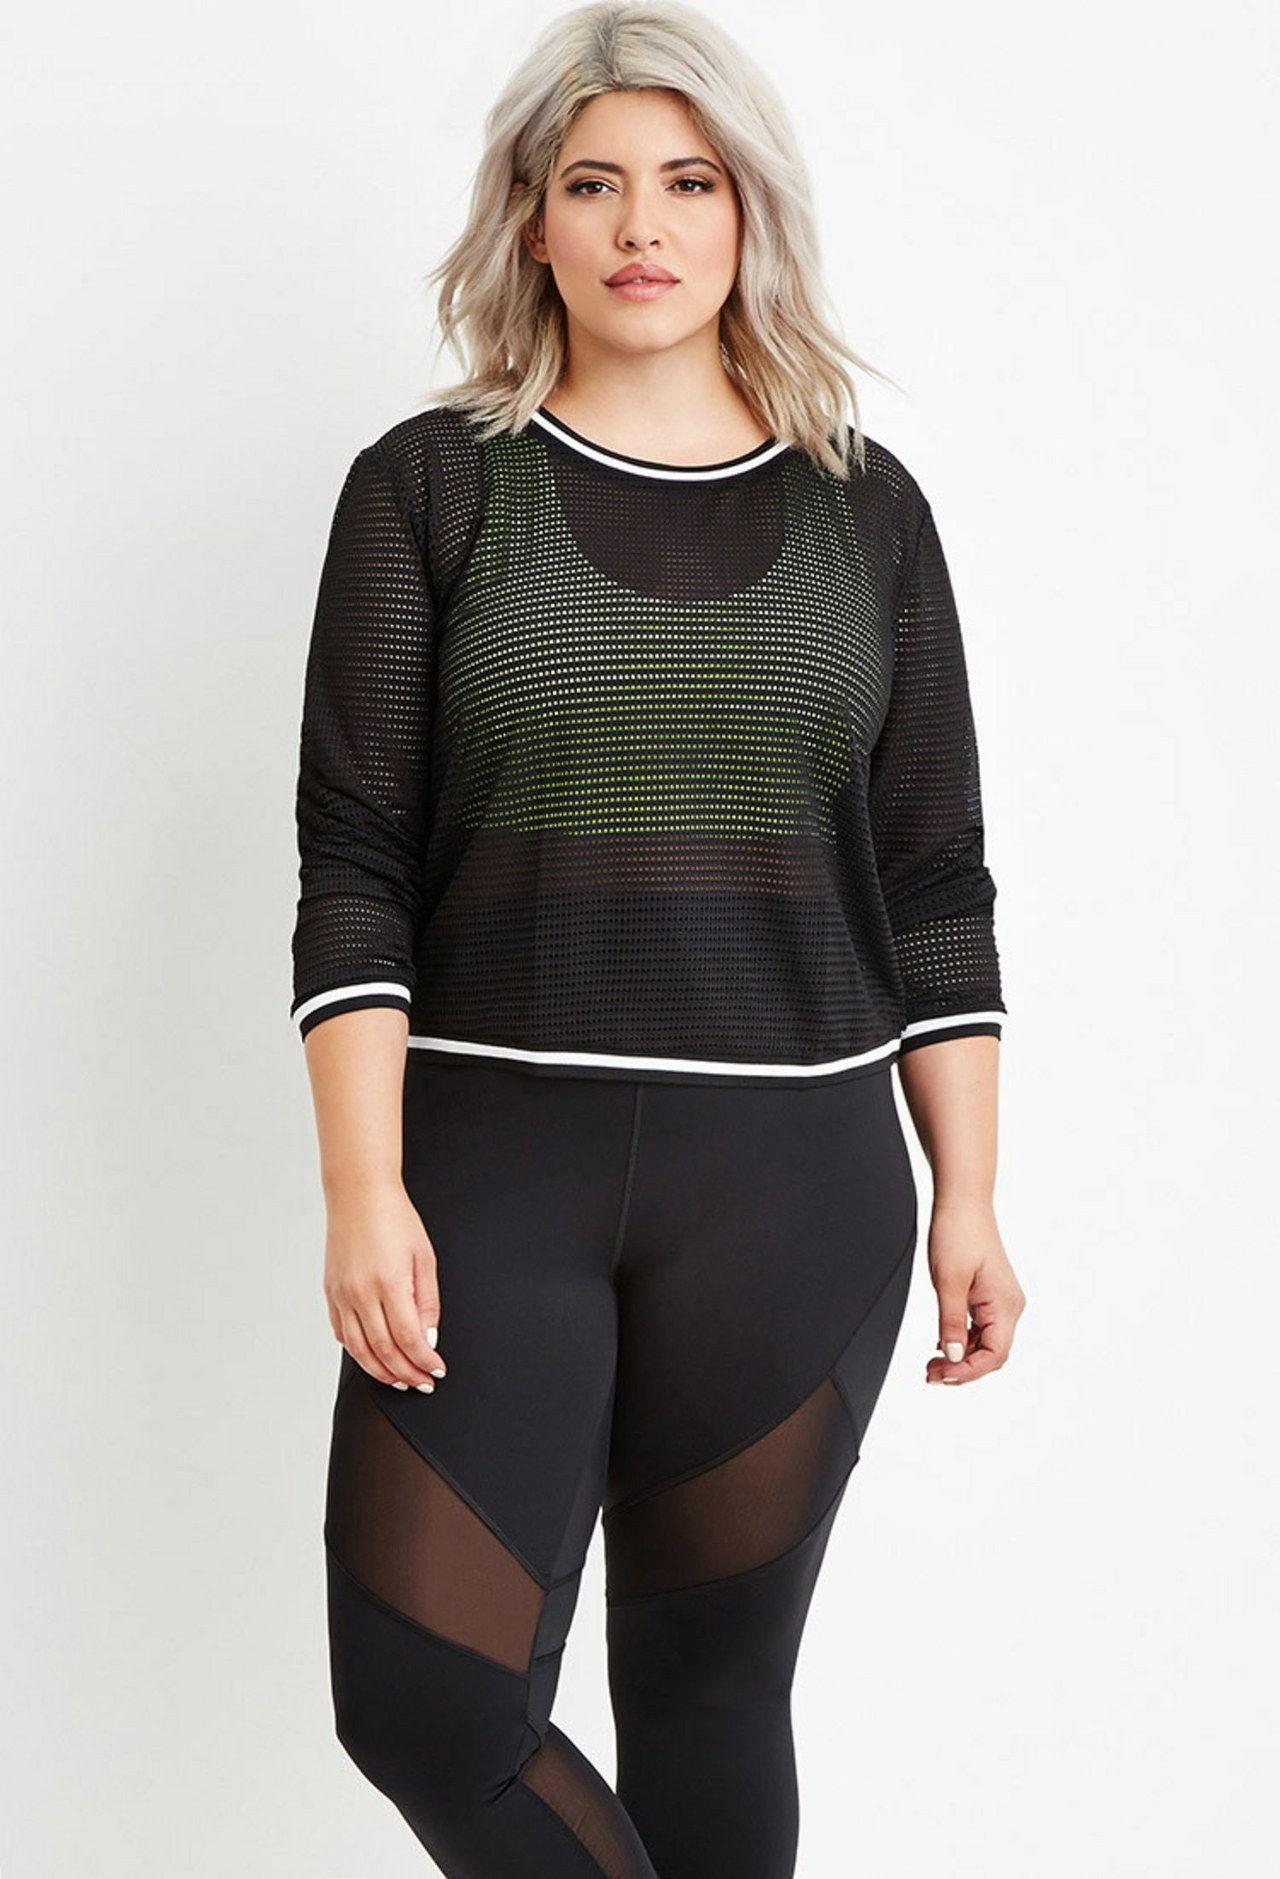 Siempre 21 plus size fitness mesh top 3